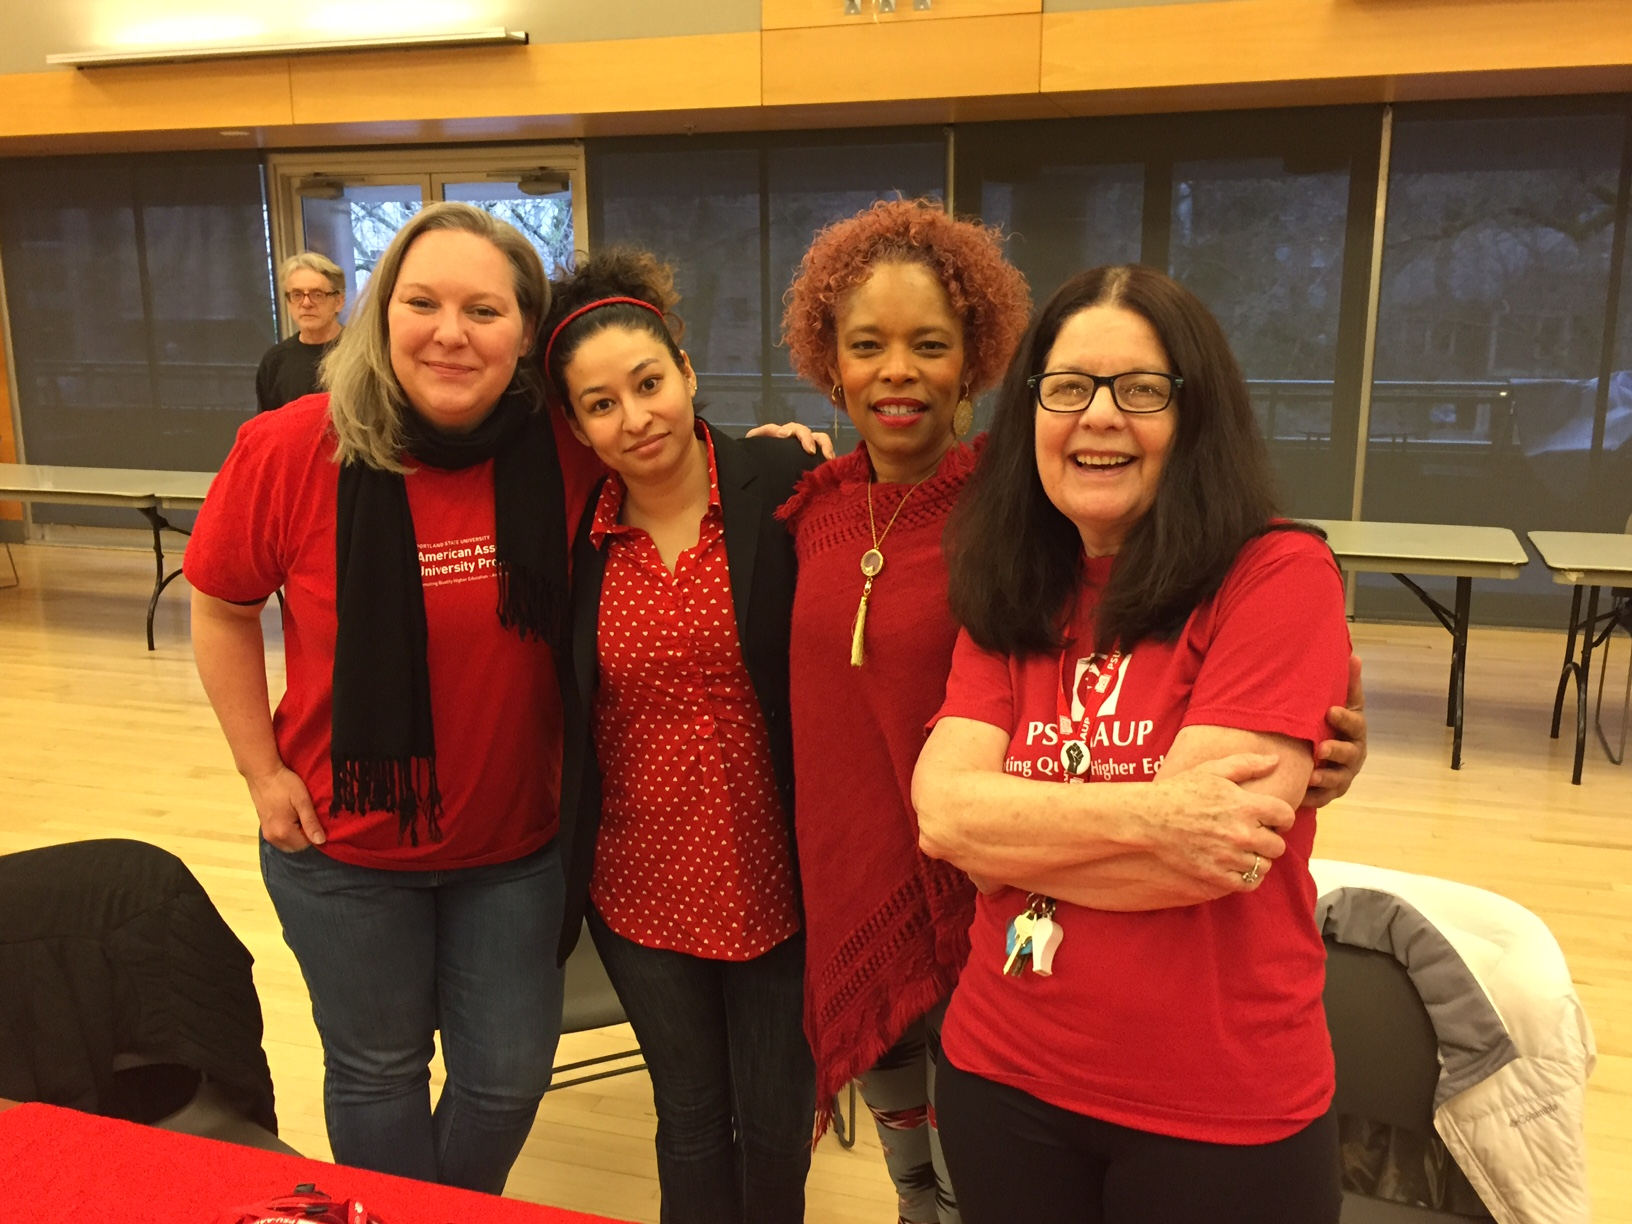 PSU-AAUP co-sponsors Let's Talk about Diversity event